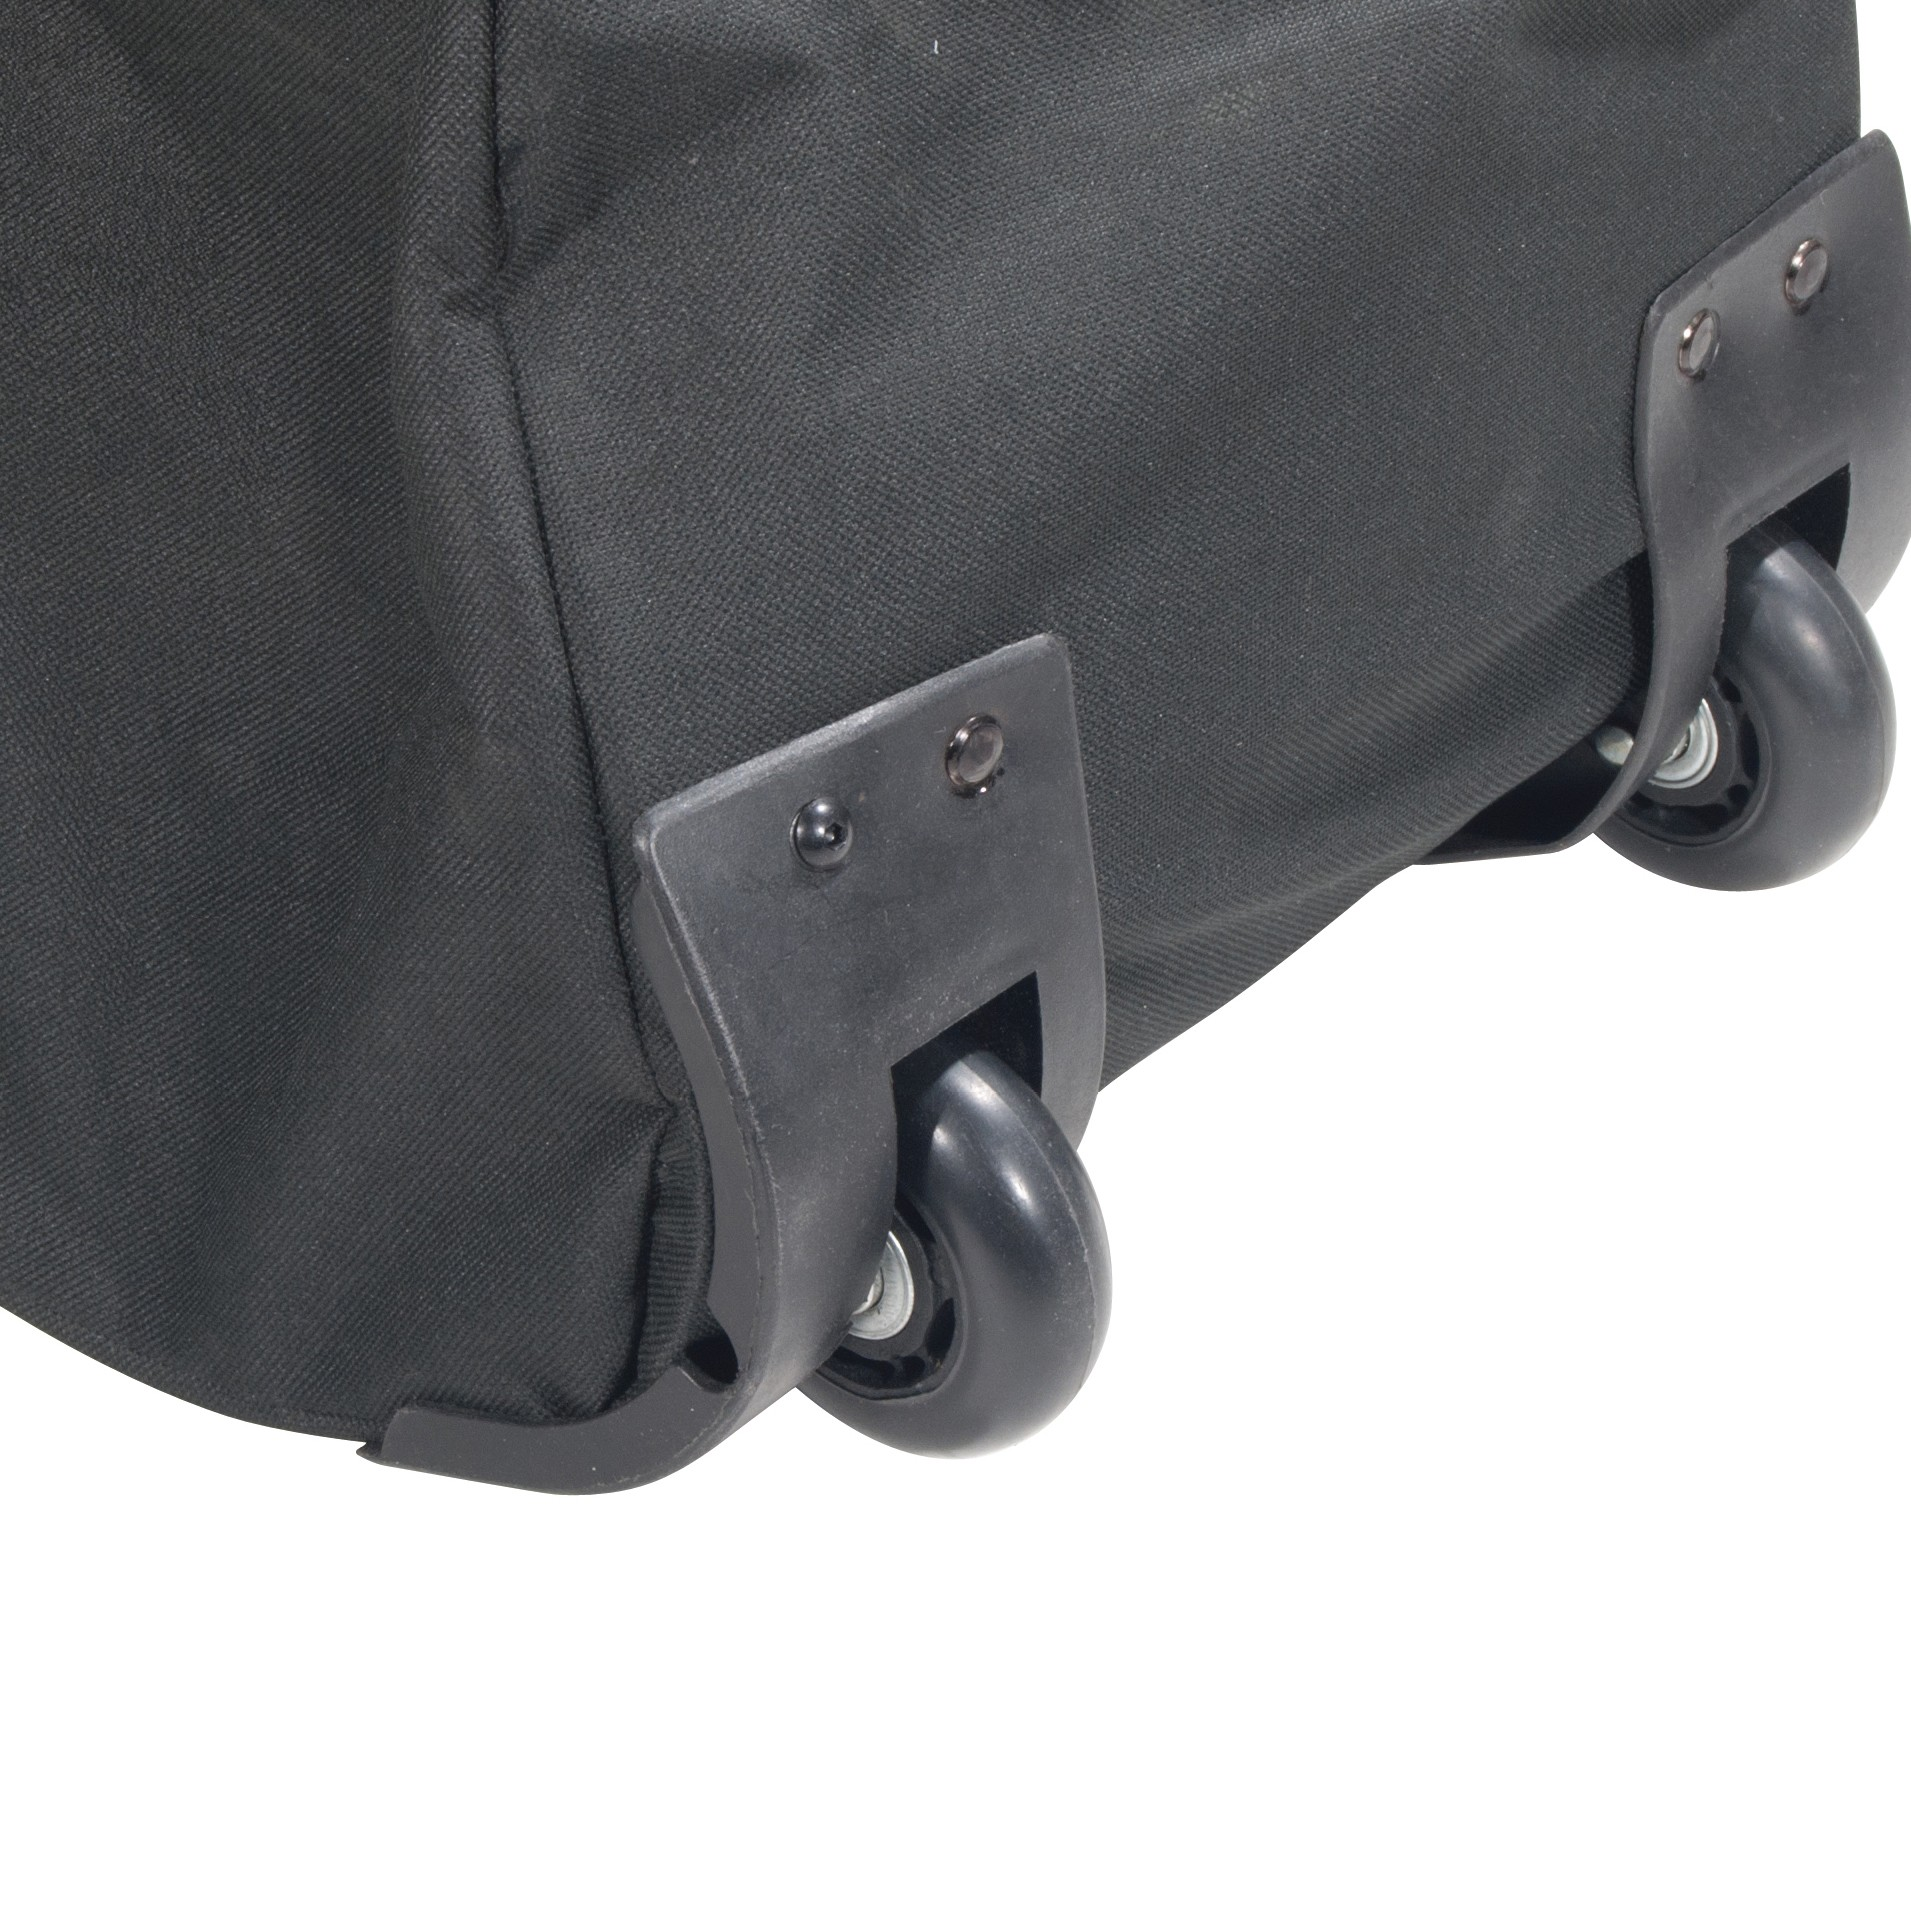 drive shower chair weight limit black plastic chairs medical travelite transport